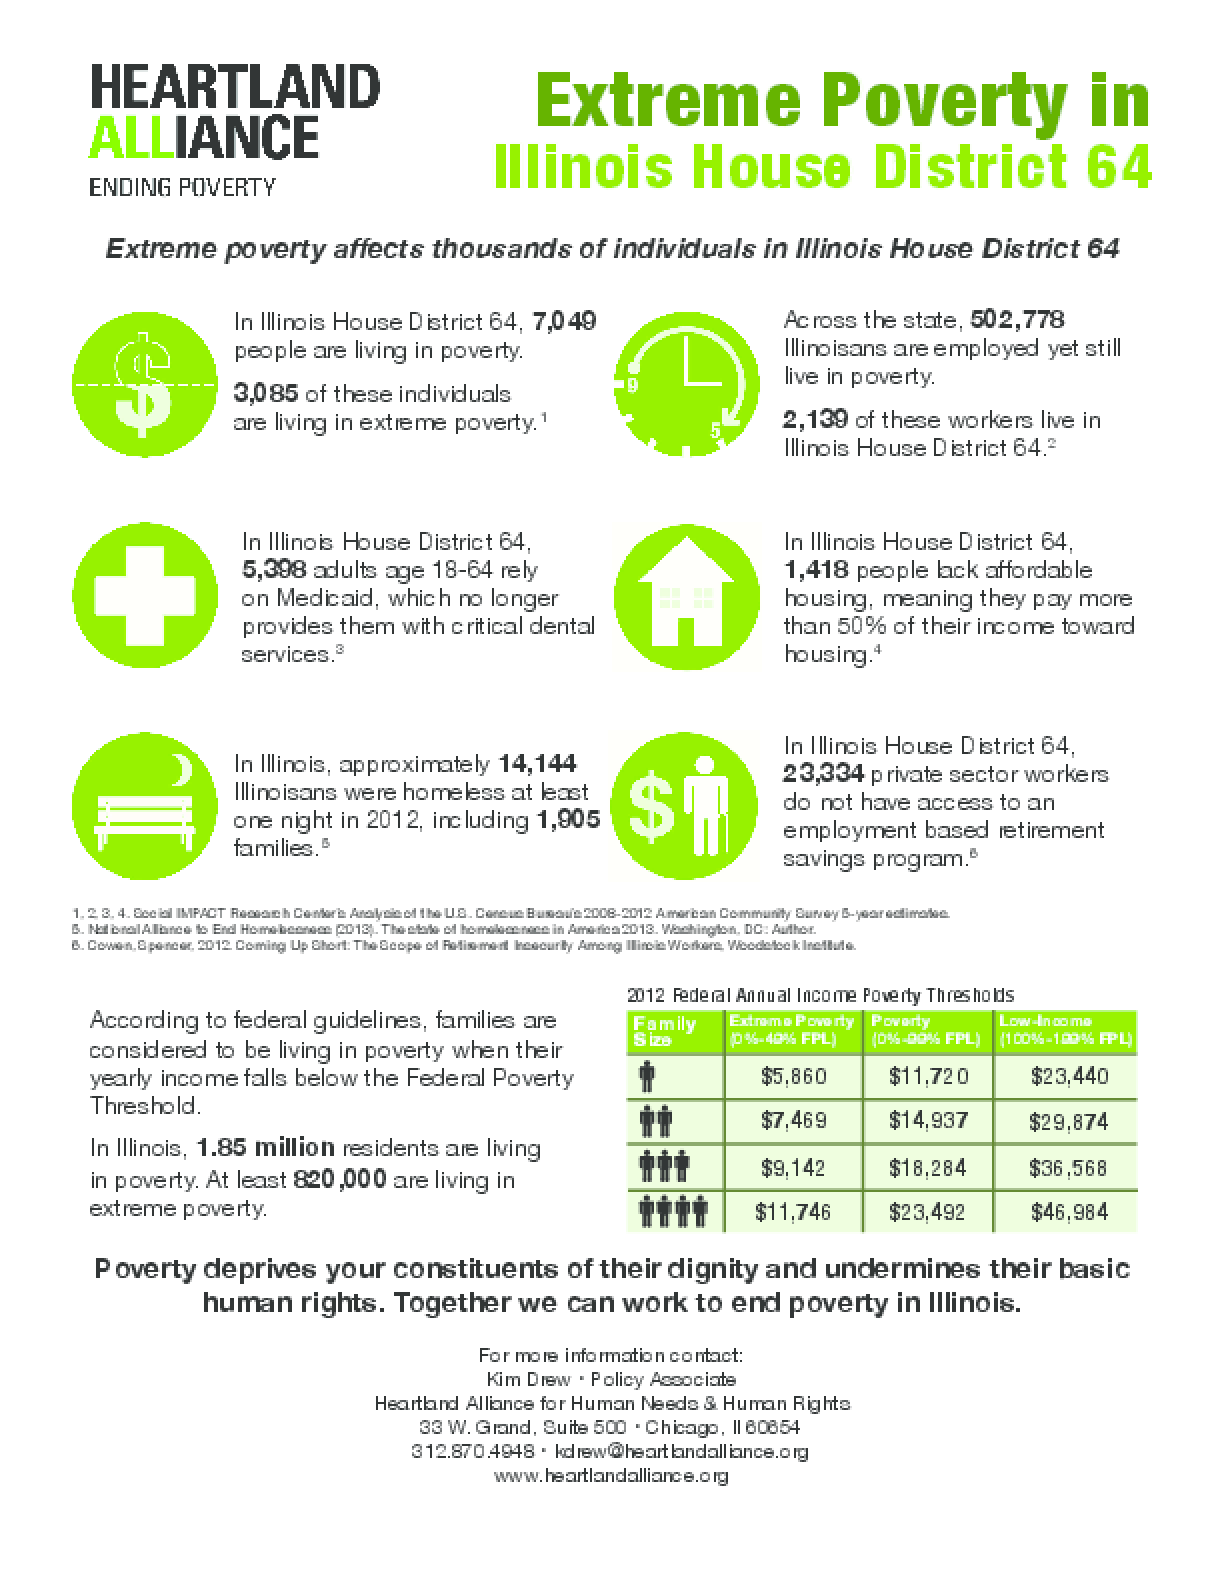 Poverty Fact Sheets for Illinois House District 64